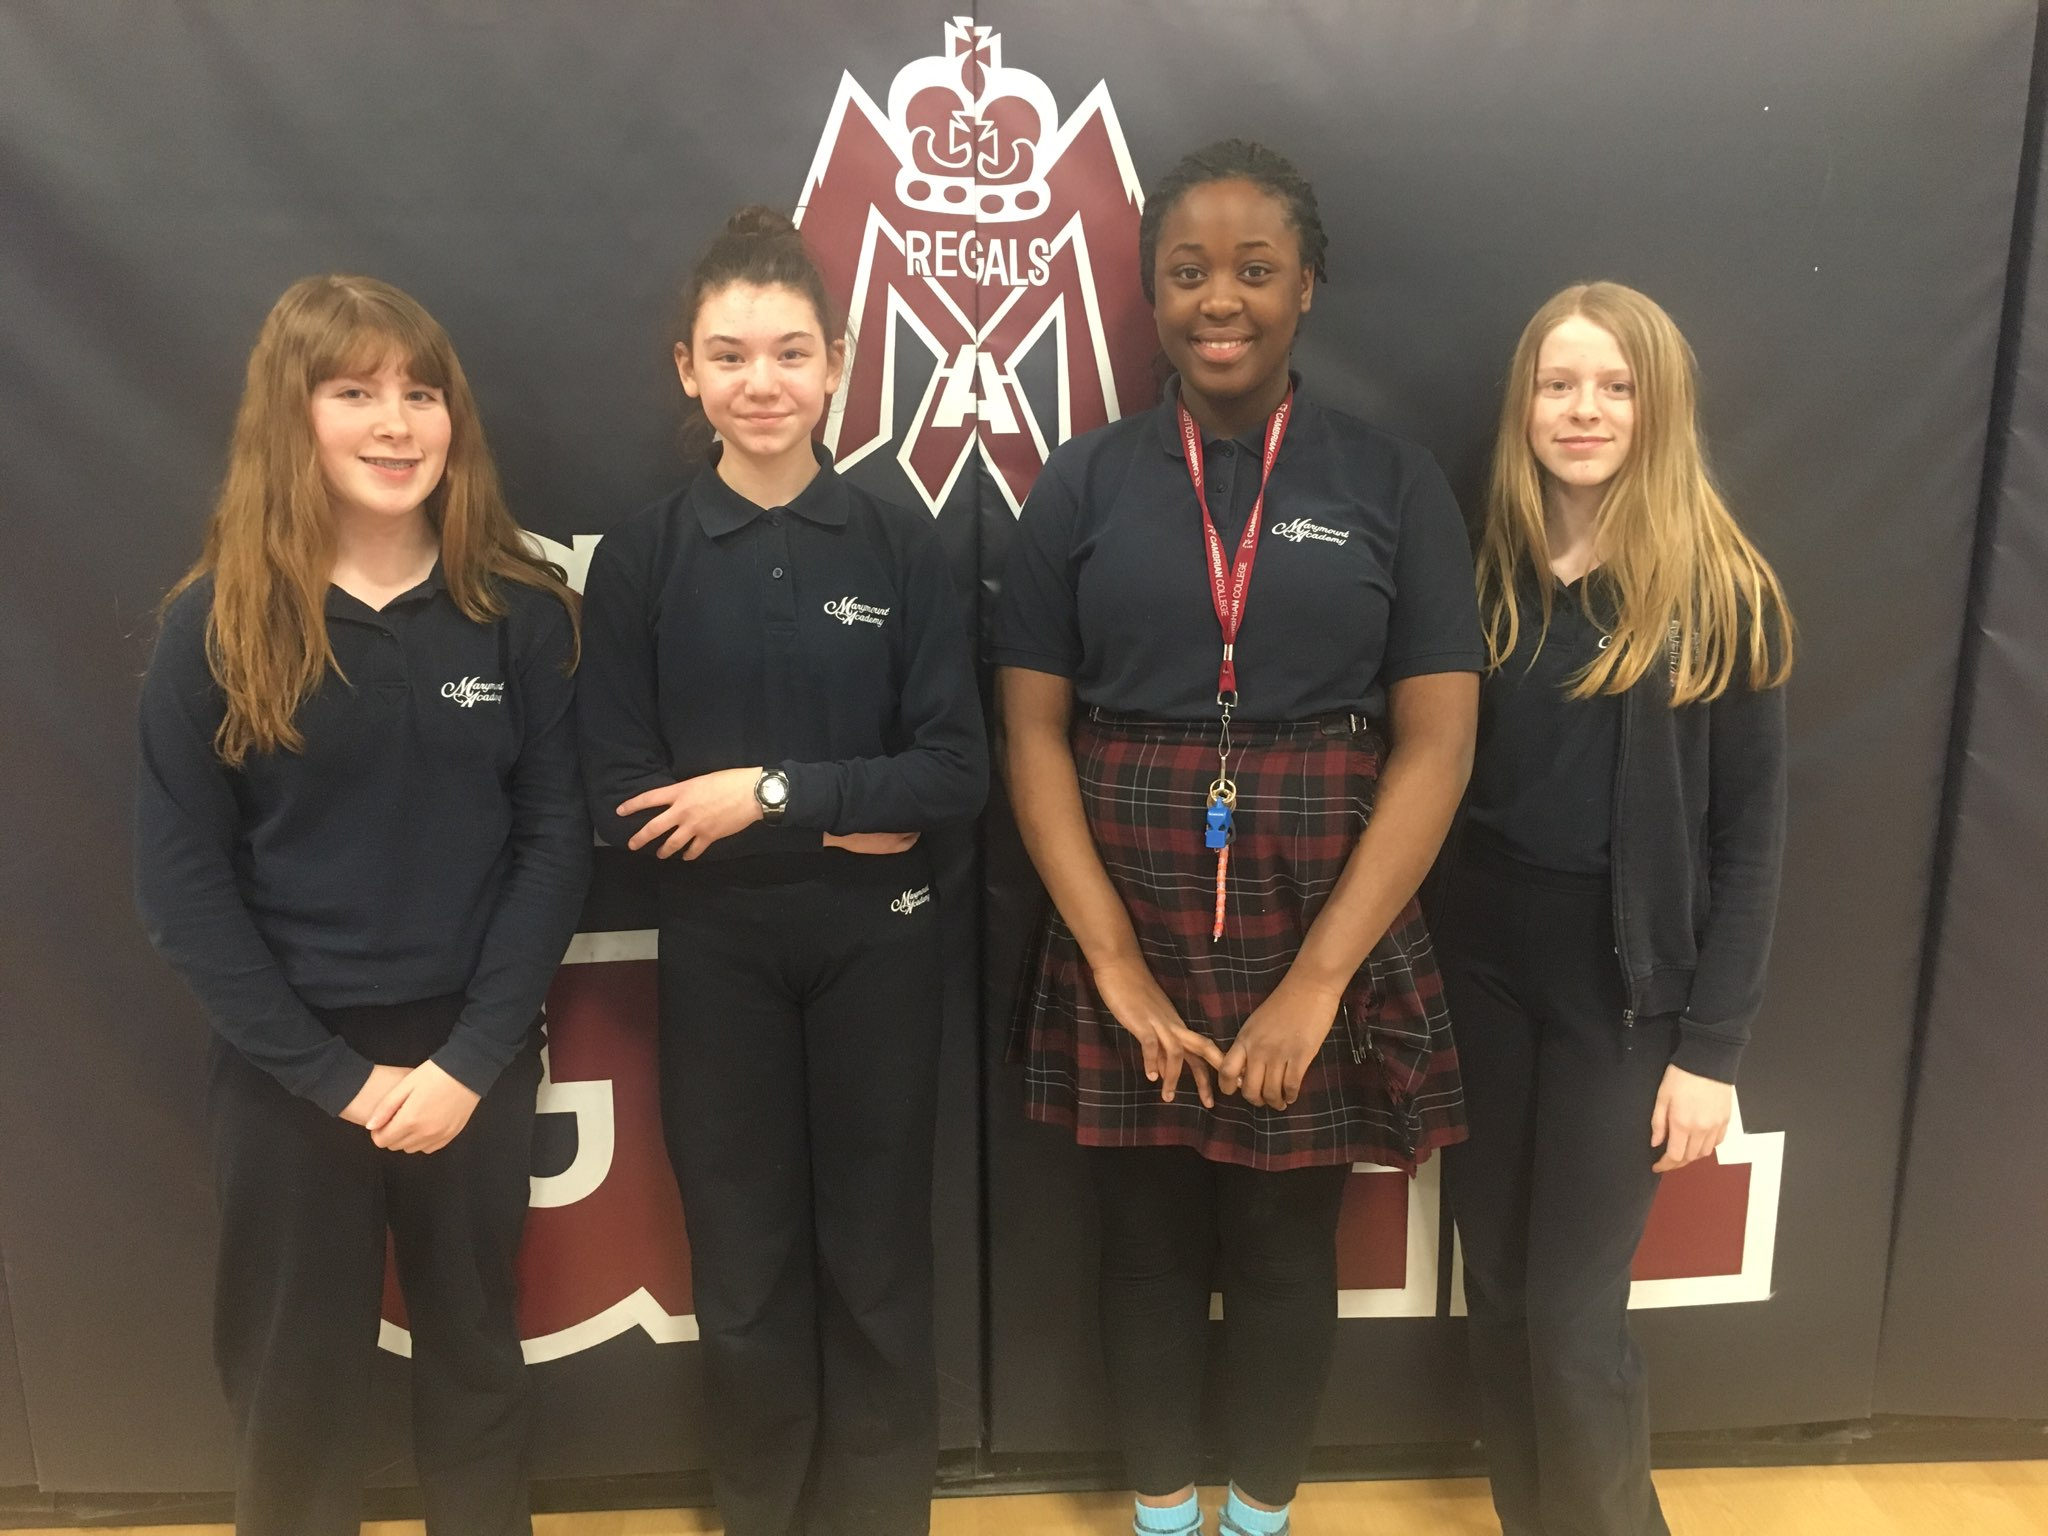 Congratulations to Mrs. Jutila's Grade 8 Marymount Academy students Emma Vellow, Beth Richard, Odossa Oriakhi, Cassidy McLardie and Mackenzie Michalowicz (not pictured) for winning second place in the Ontario Catholic School Trustees Association video contest.